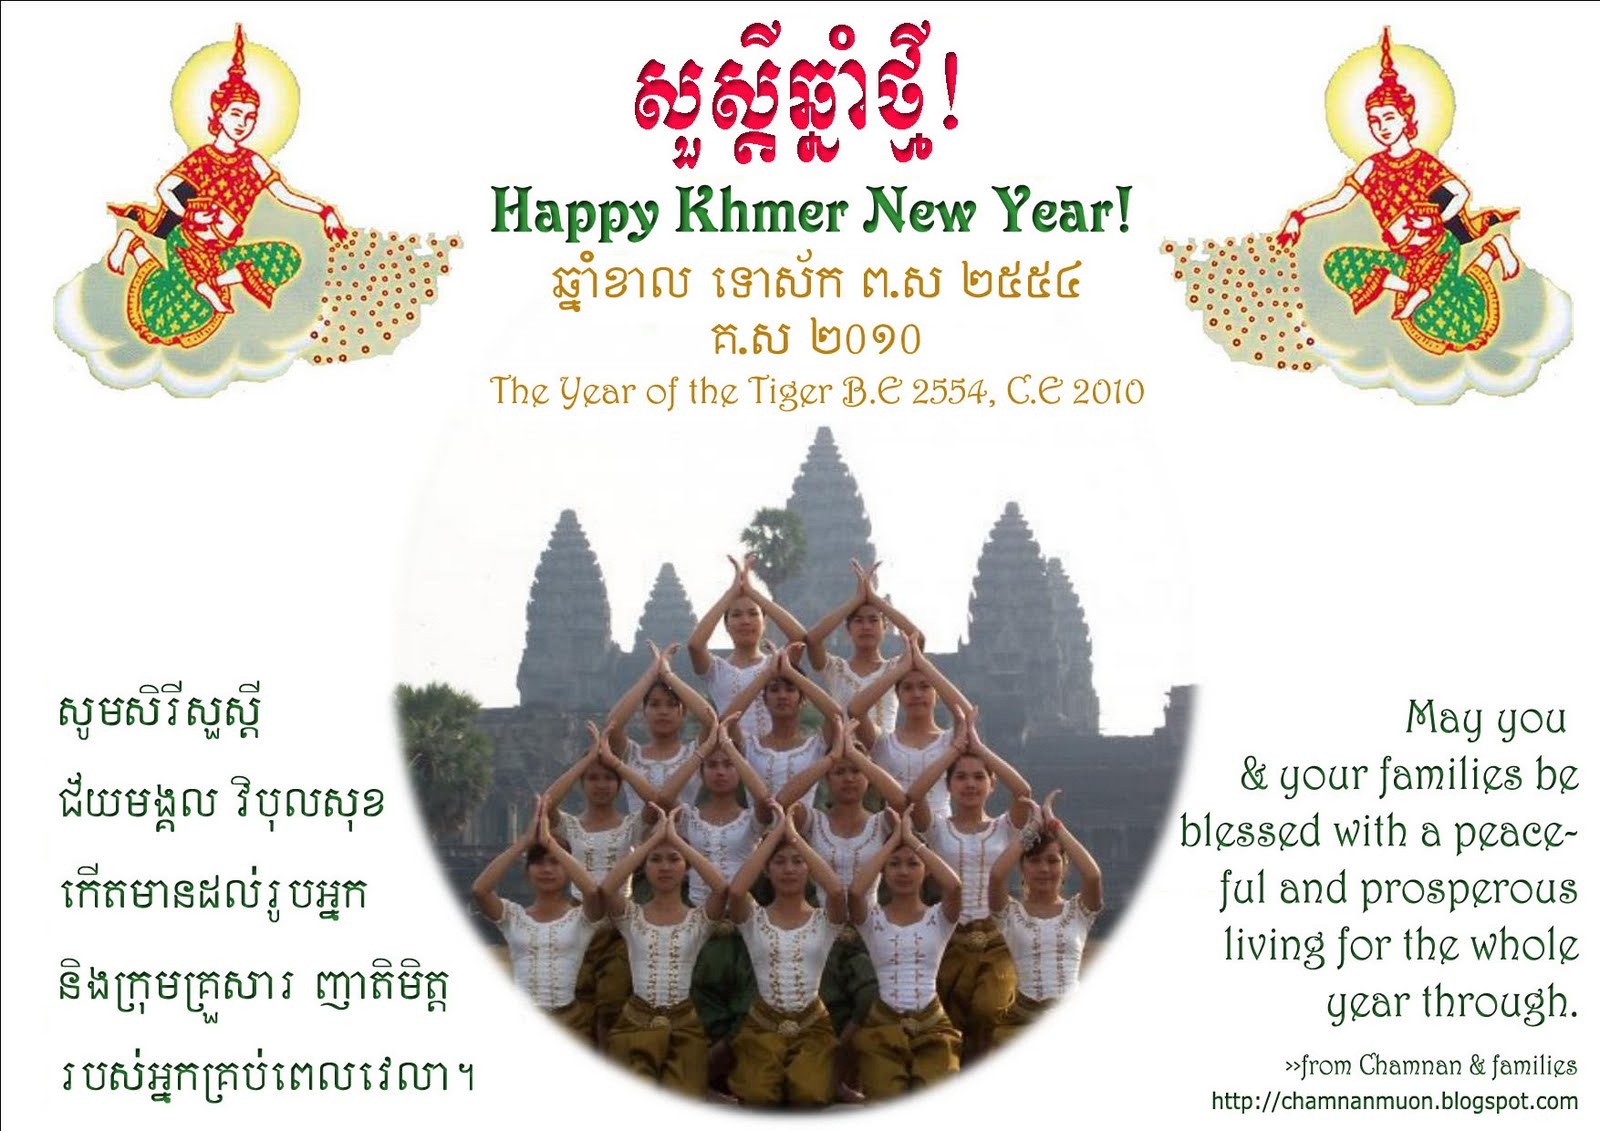 khmer new year essay 2 page article about cambodian new year traditions, taken from comments given  at a new year's celebration.